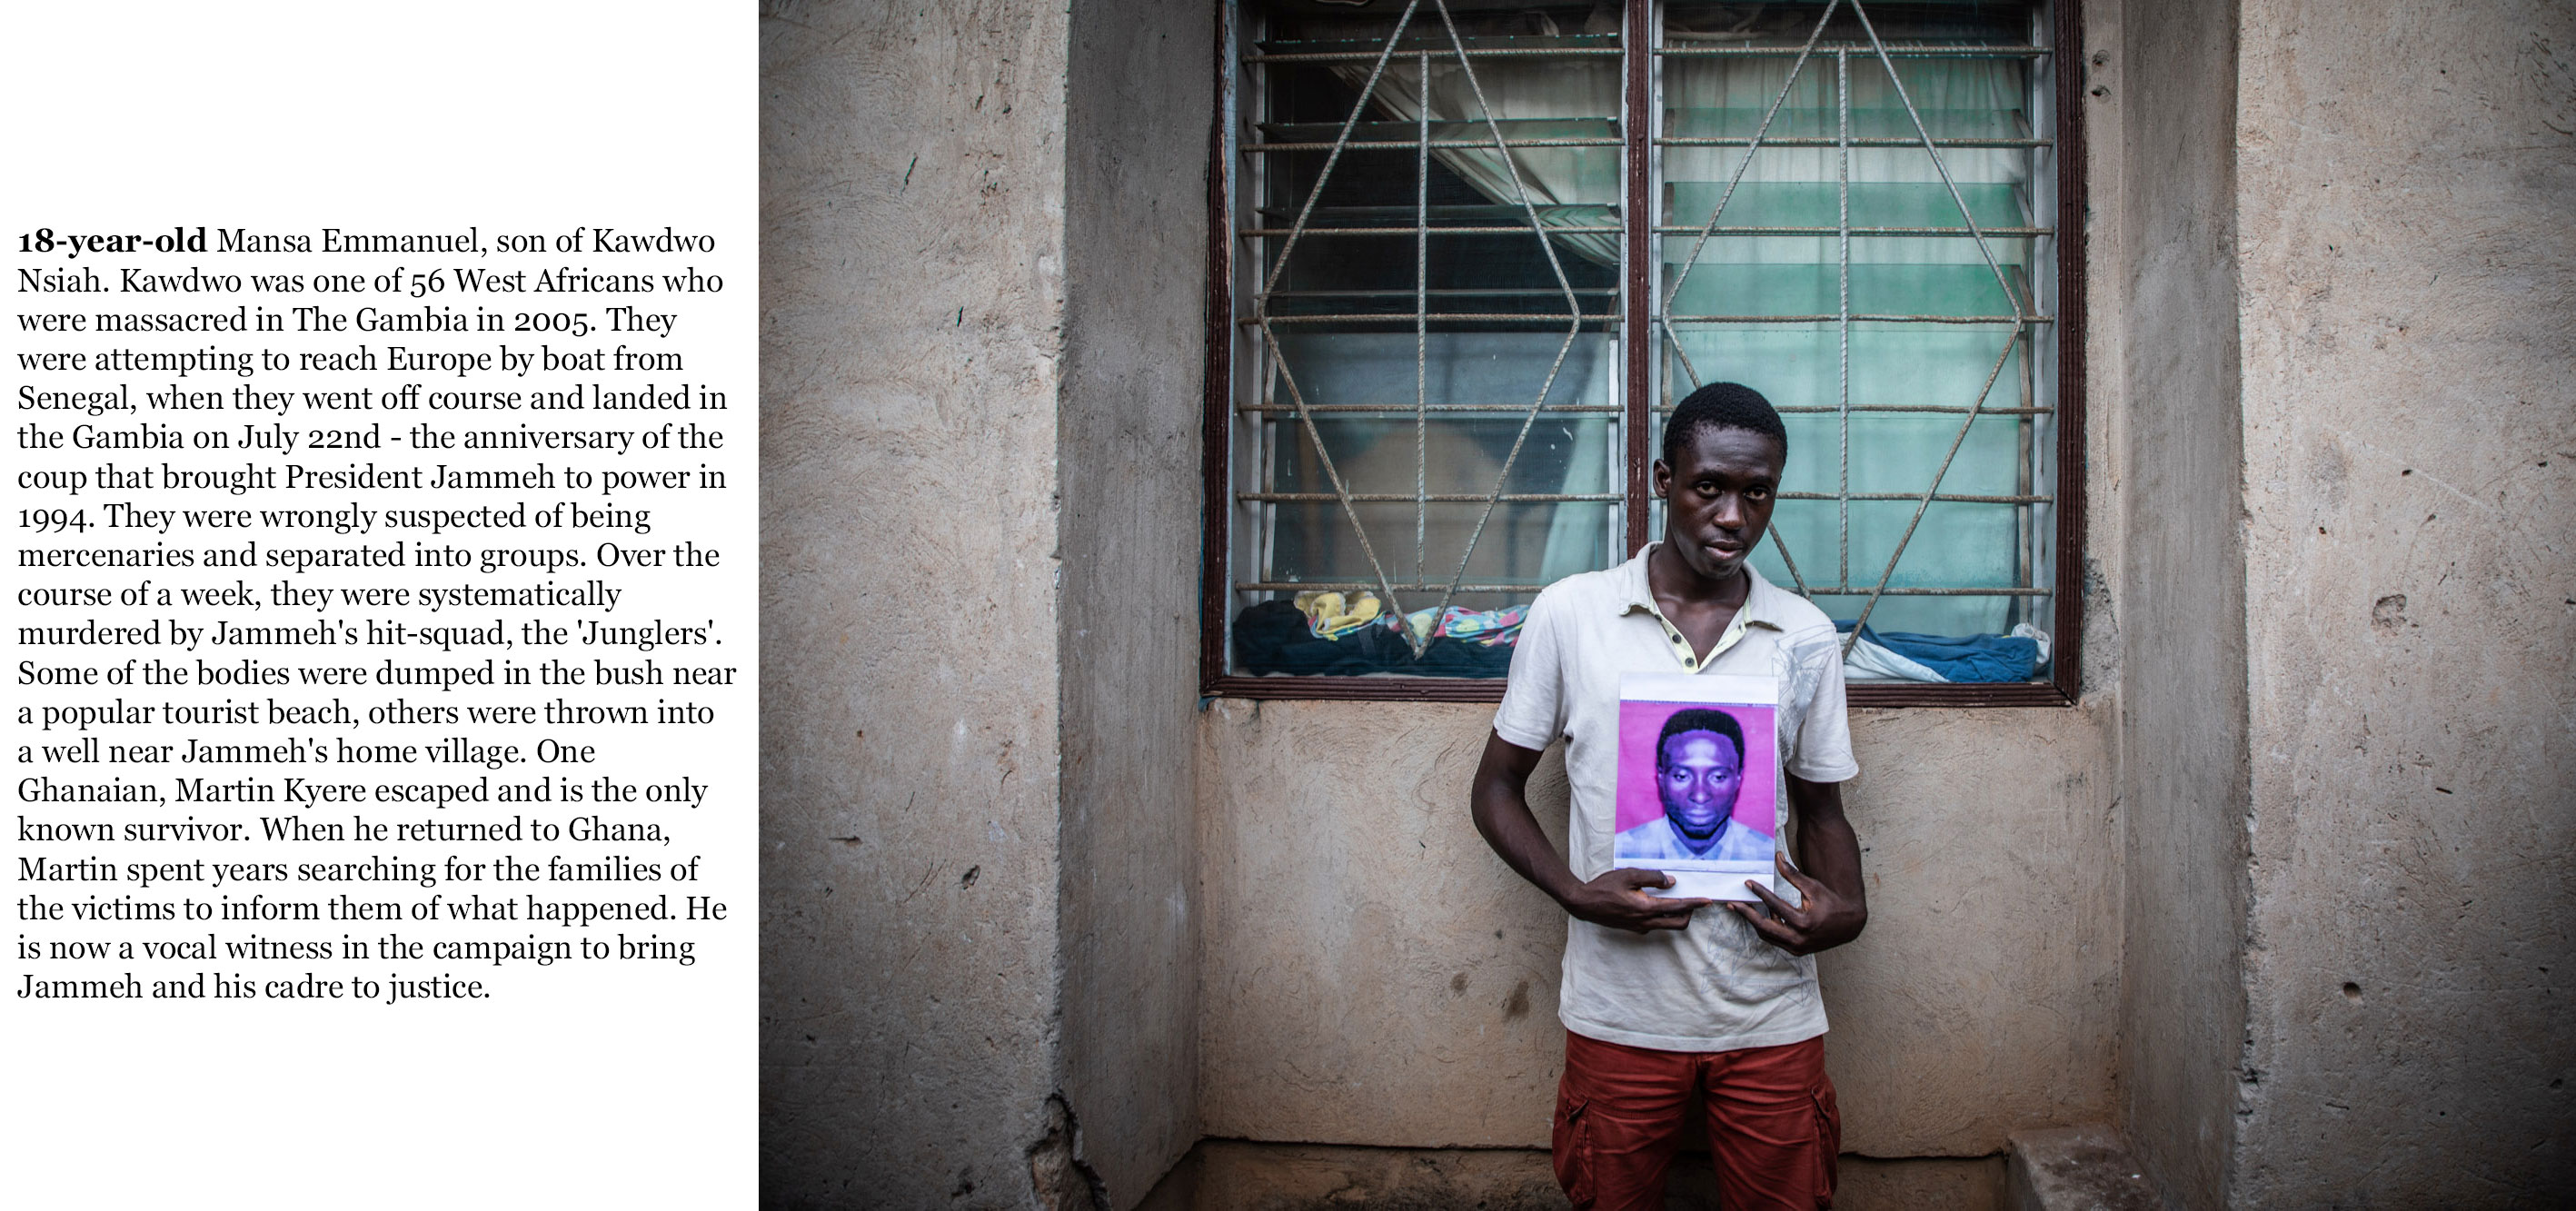 Gambia victims and resisters -  mansa_emmanuel, son of Kawdwo Nsiah,   one of over 50 West Africans, migrants including 44 Ghanaians, killed in 2005 by Gambian security forces -1185_TEXT_WEB ©Jason florio